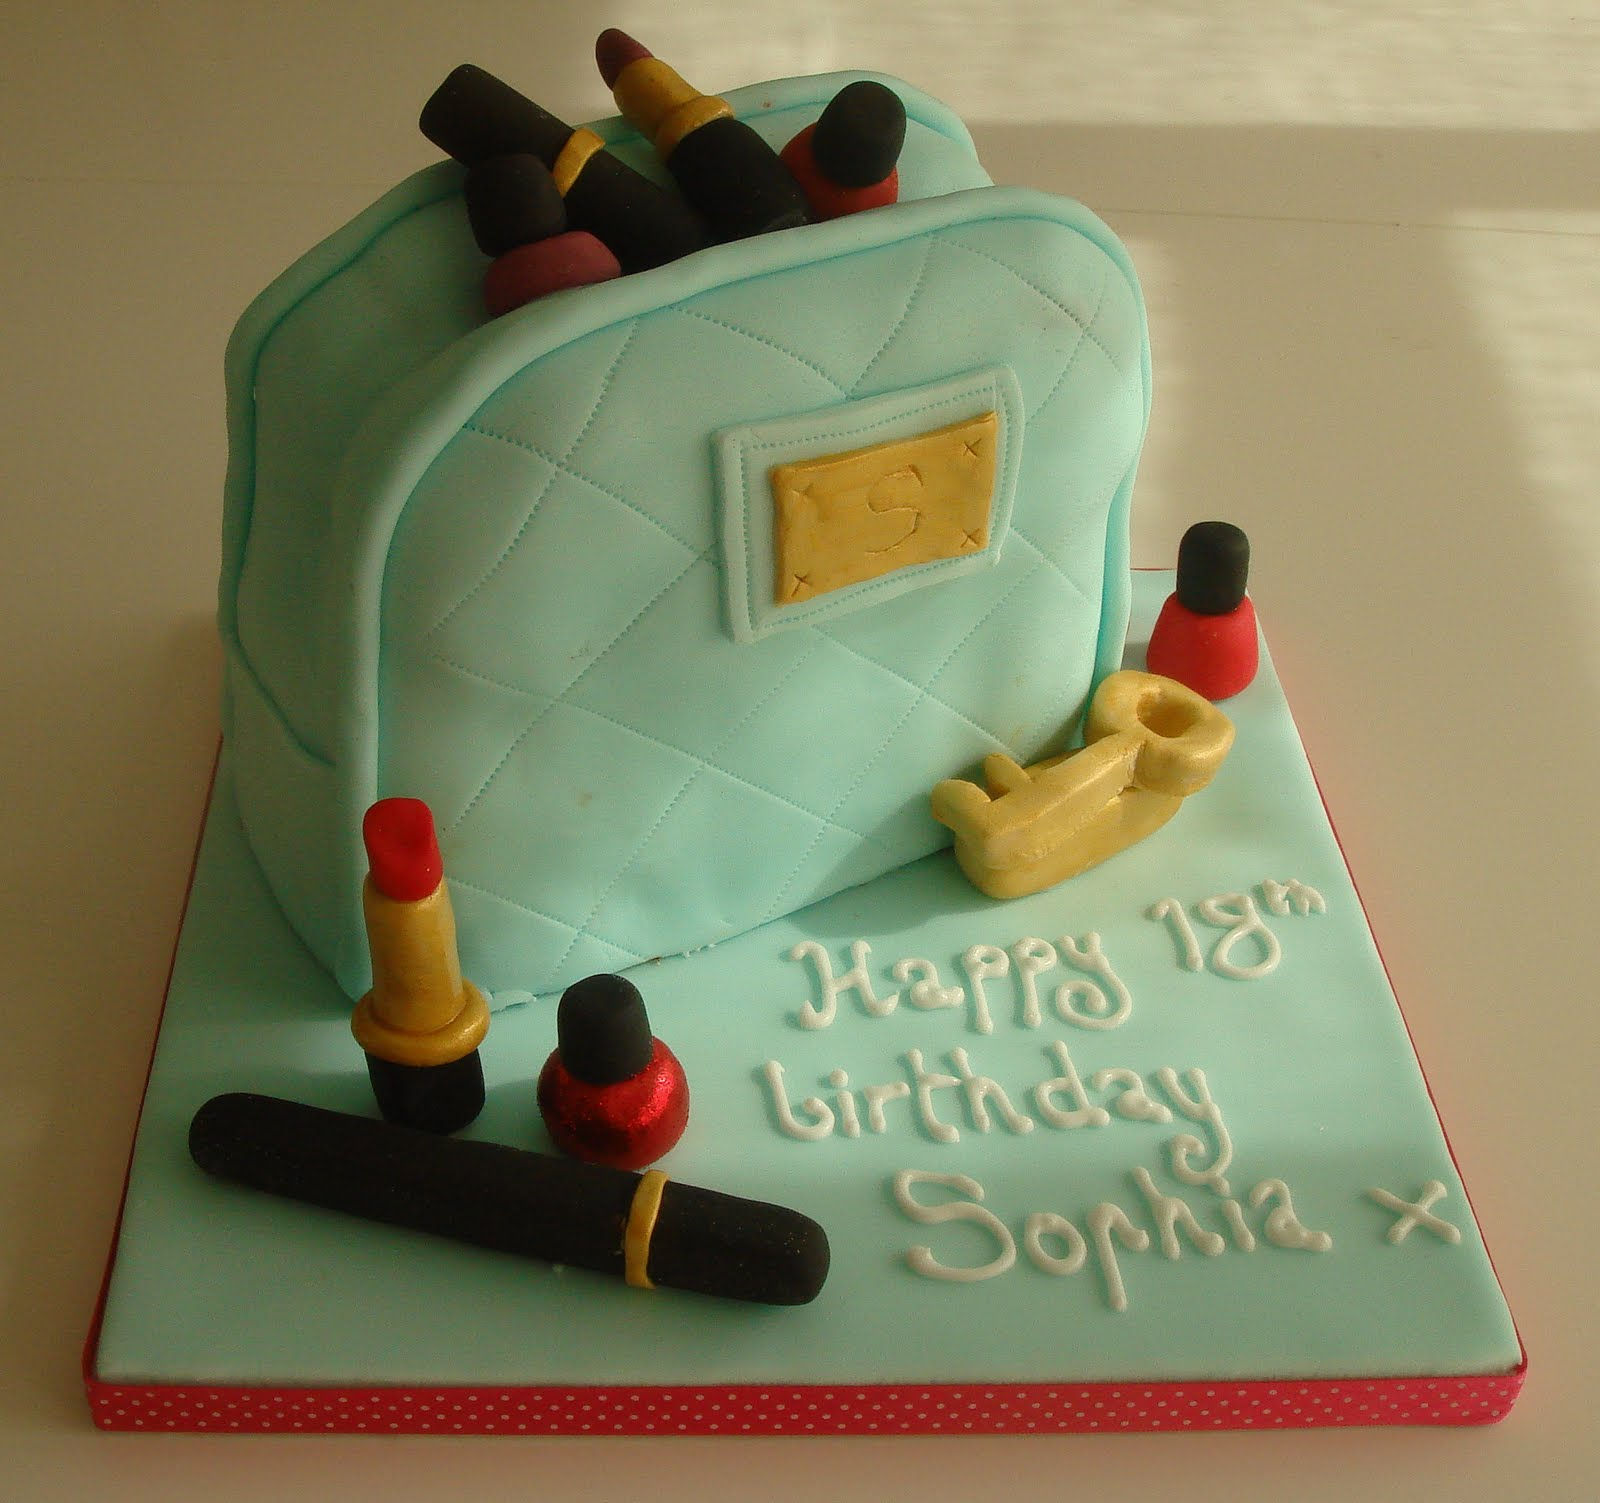 Lizzies Pretty Scrumptious Cakes Designer Make Up Bag Cake With